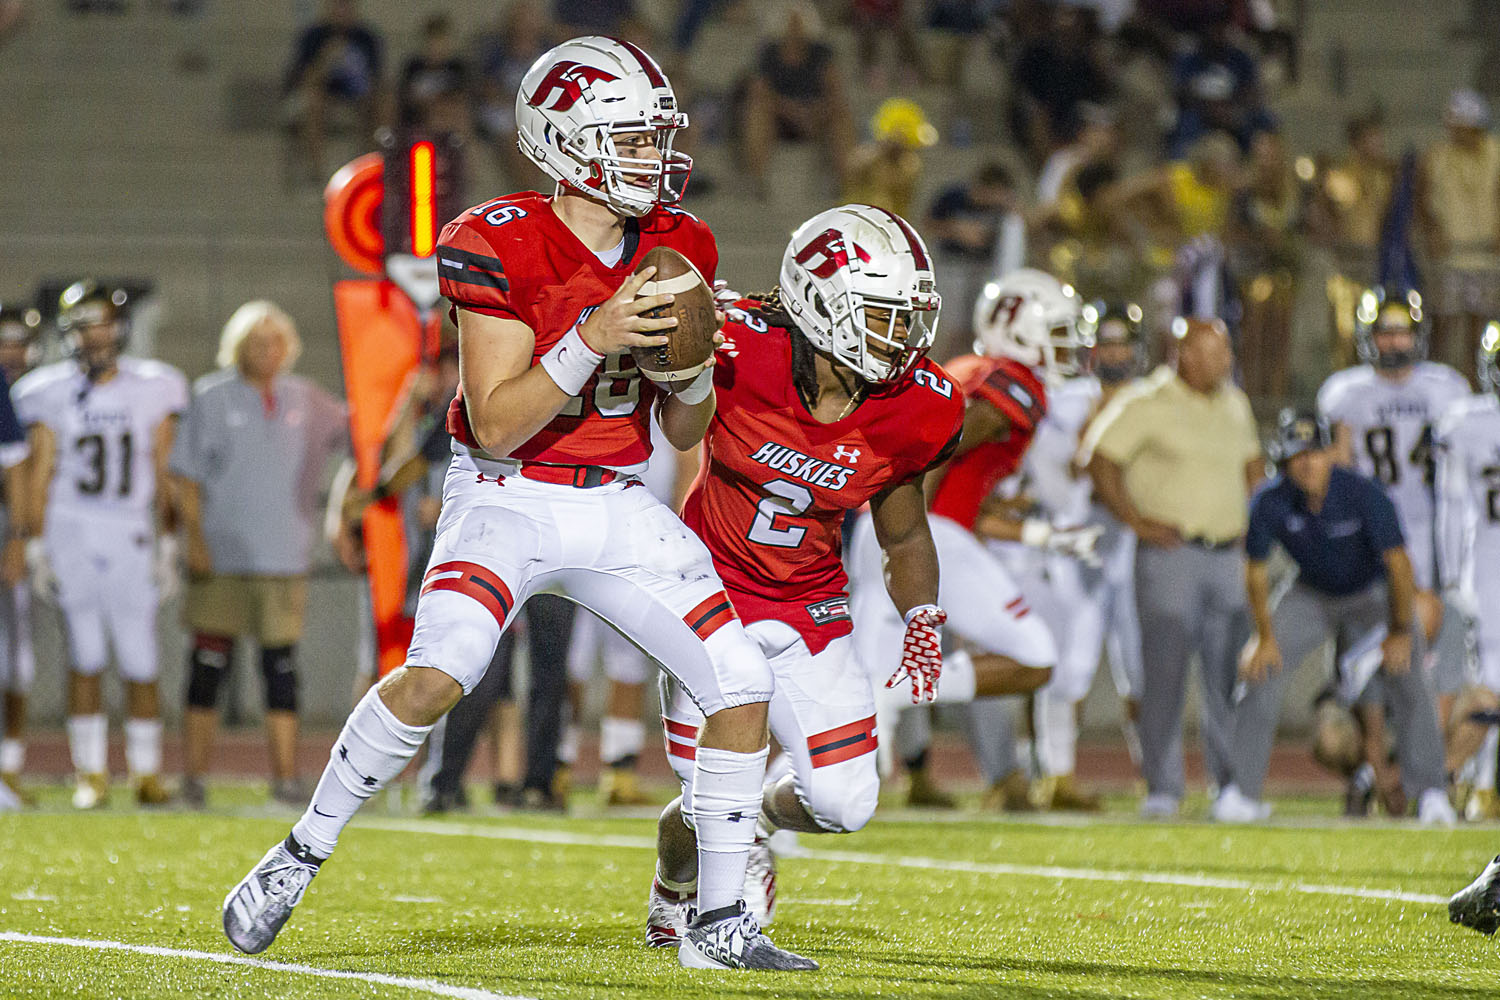 Hewitt-Trussville and Hoover set to battle in matchup of nationally-ranked teams